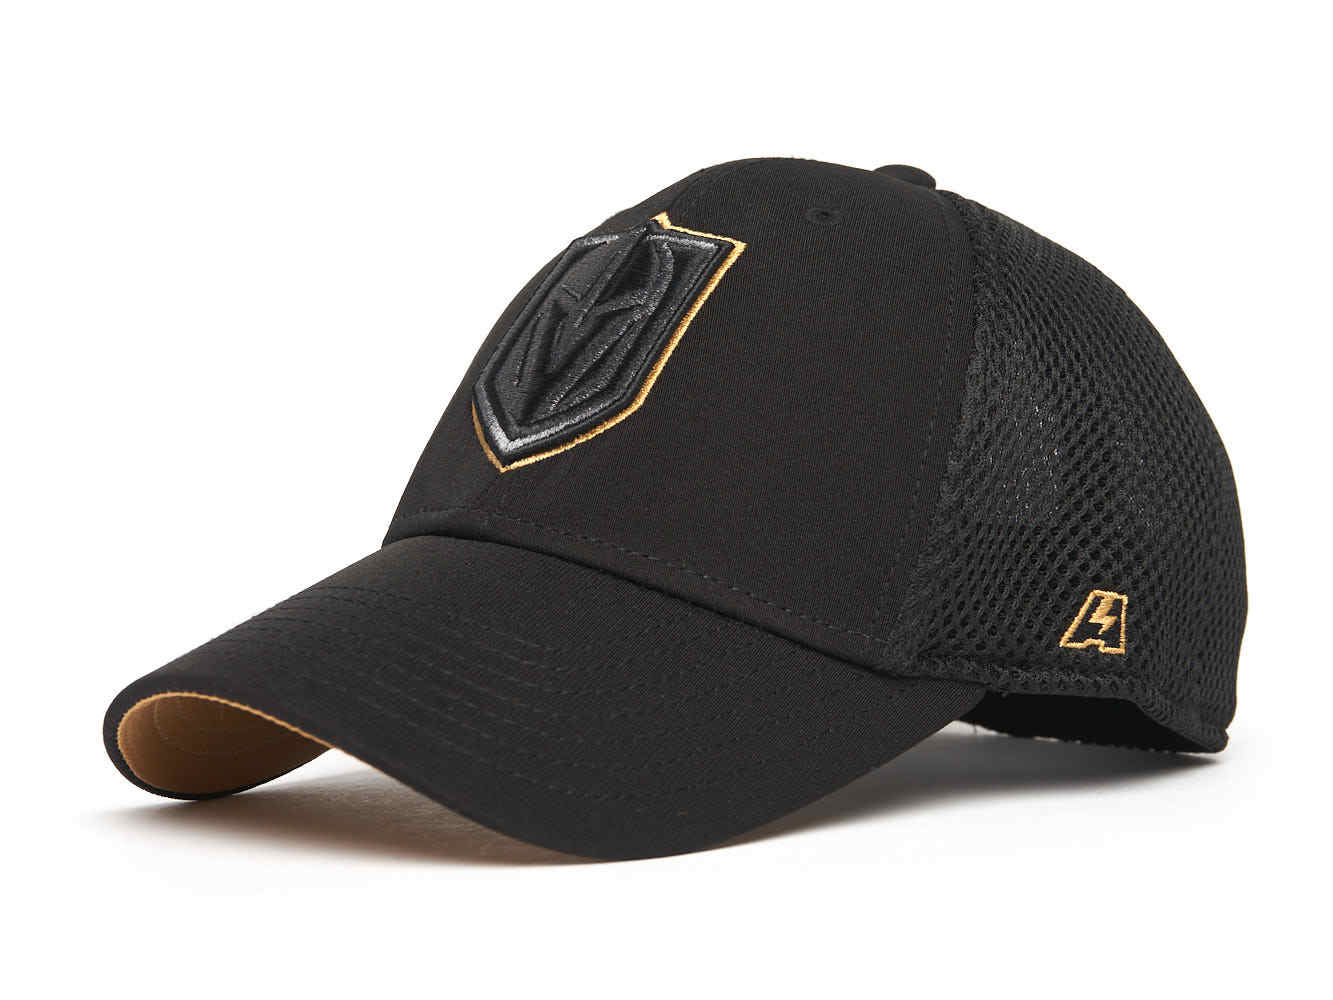 Бейсболка NHL Vegas Golden Knights (размер S)